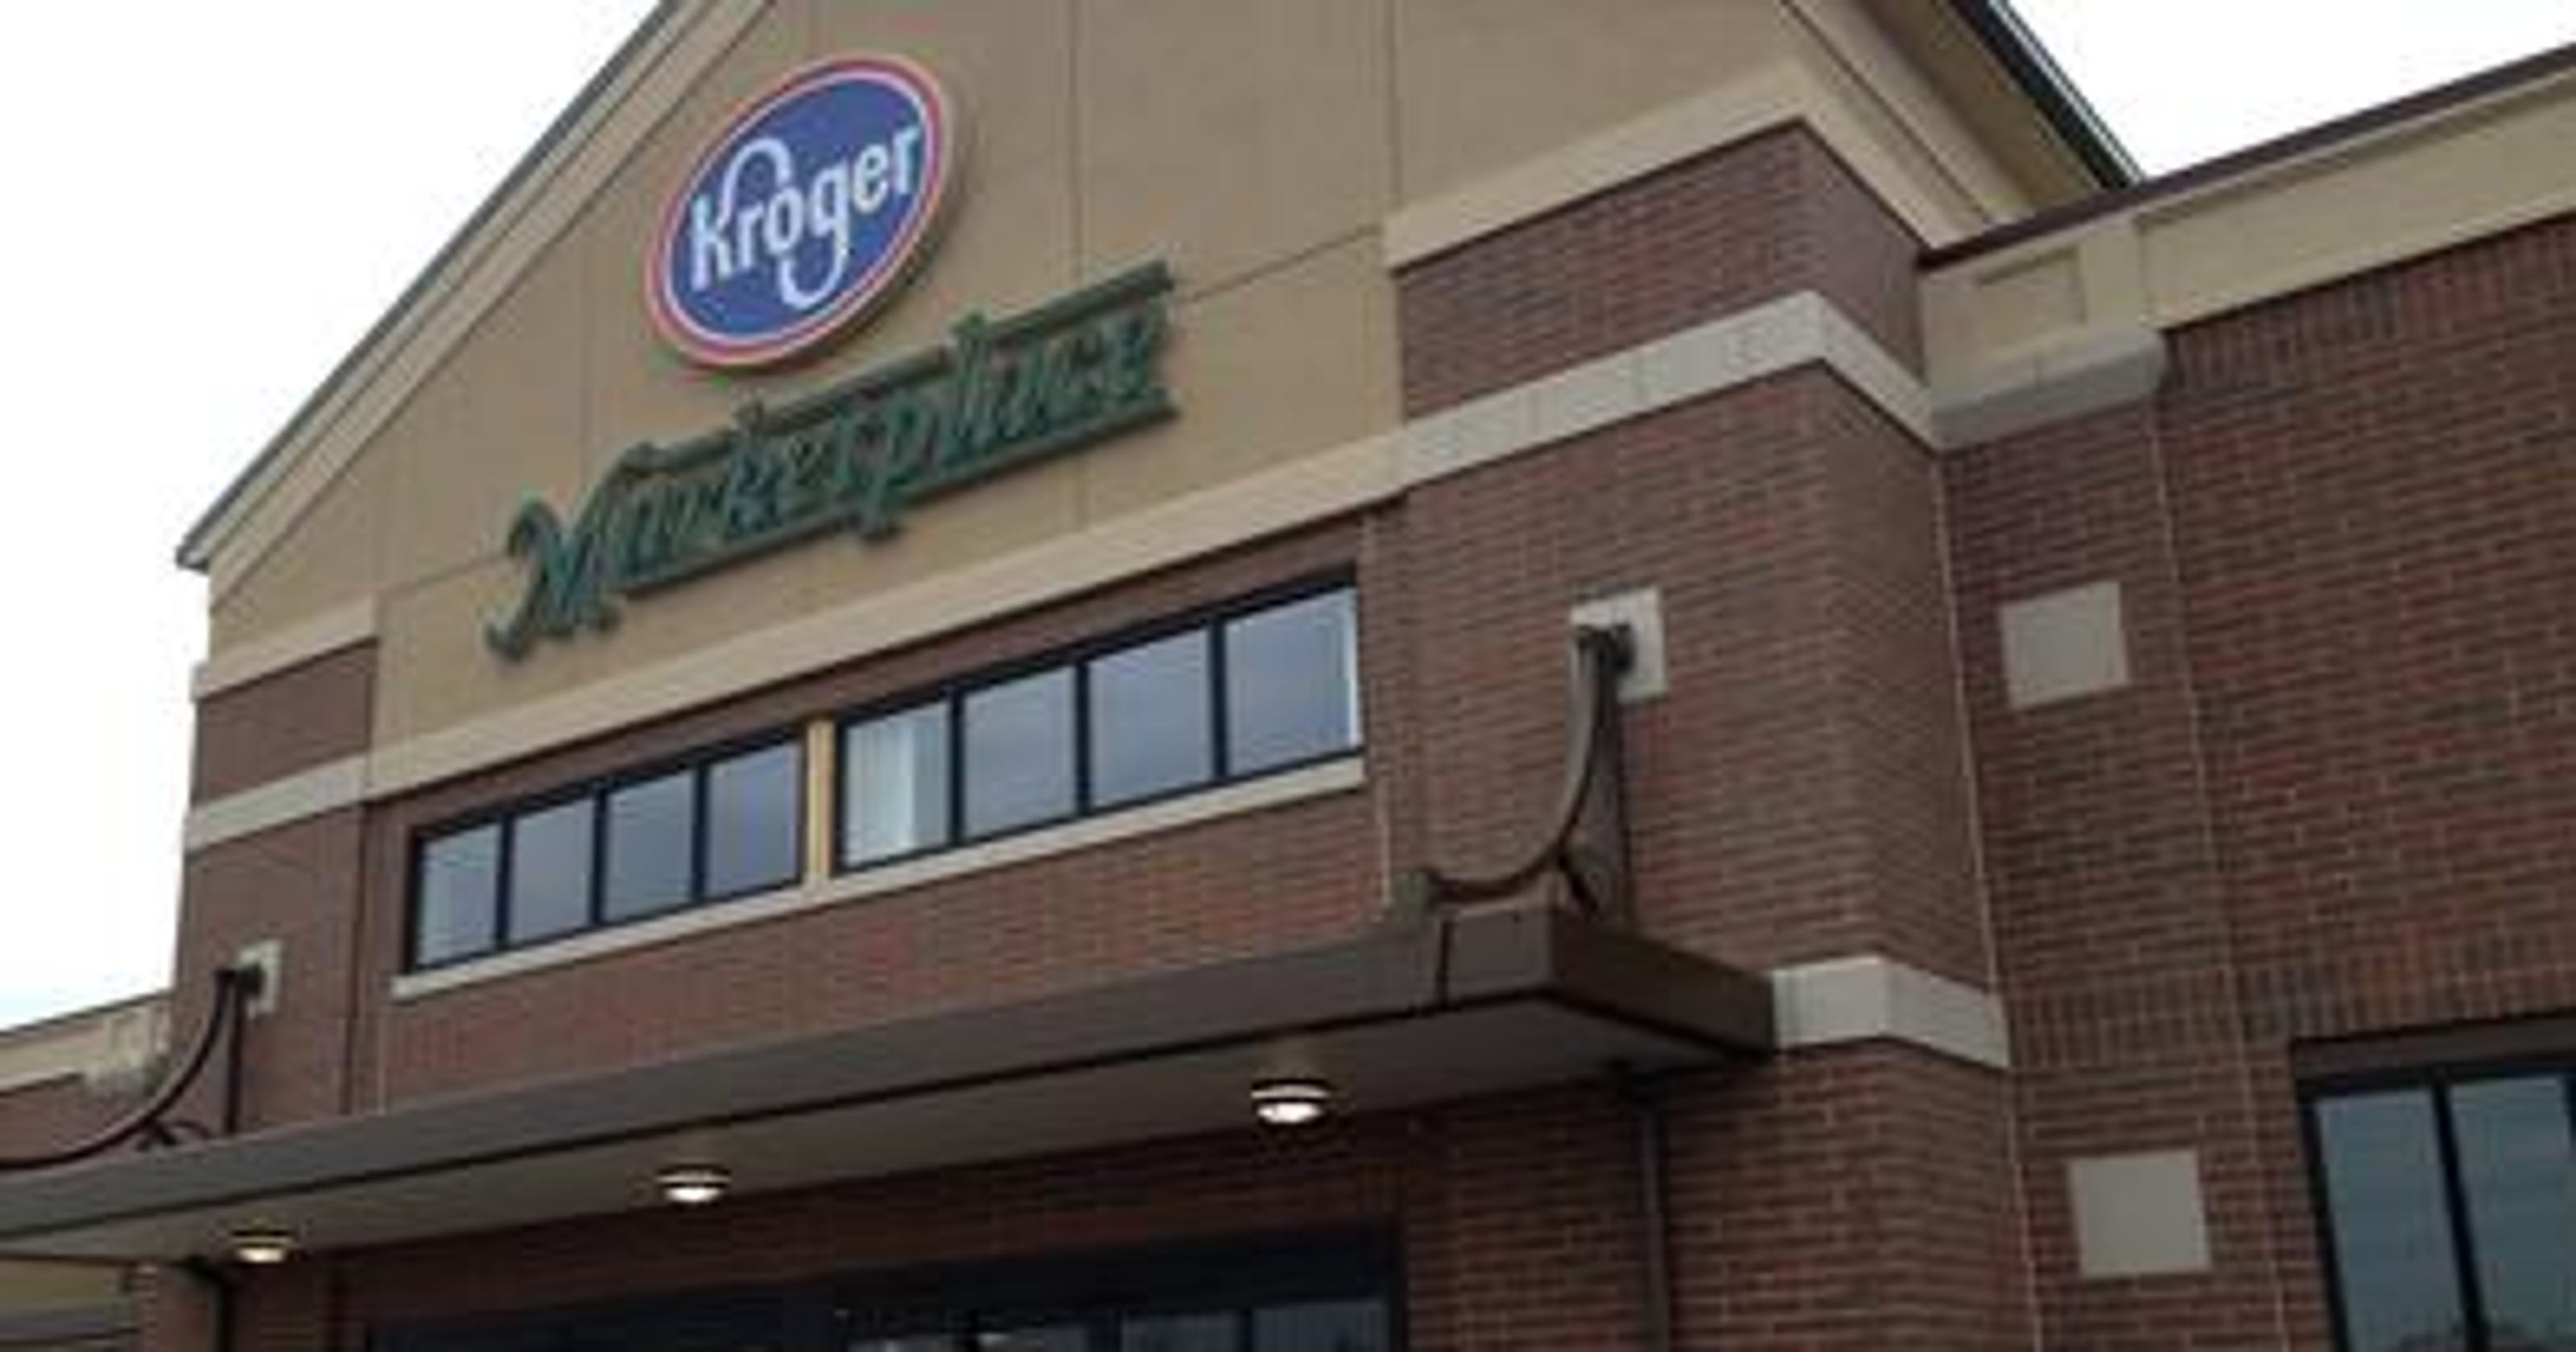 CBD oil coming to Kroger stores in coming weeks